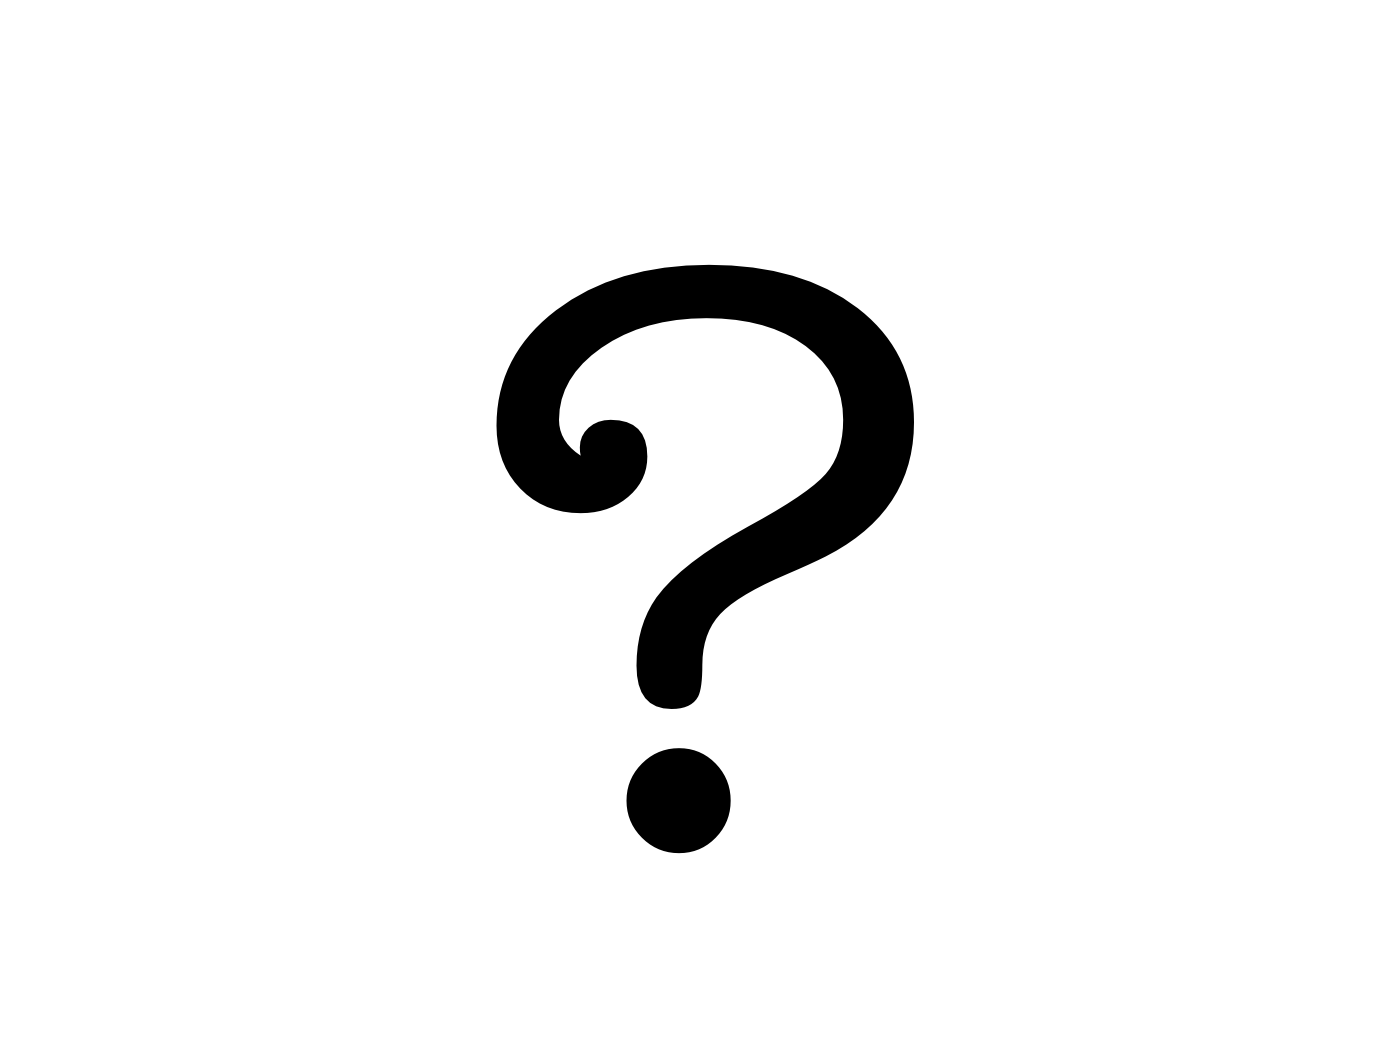 Free Cool Question Marks Download Free Clip Art Free